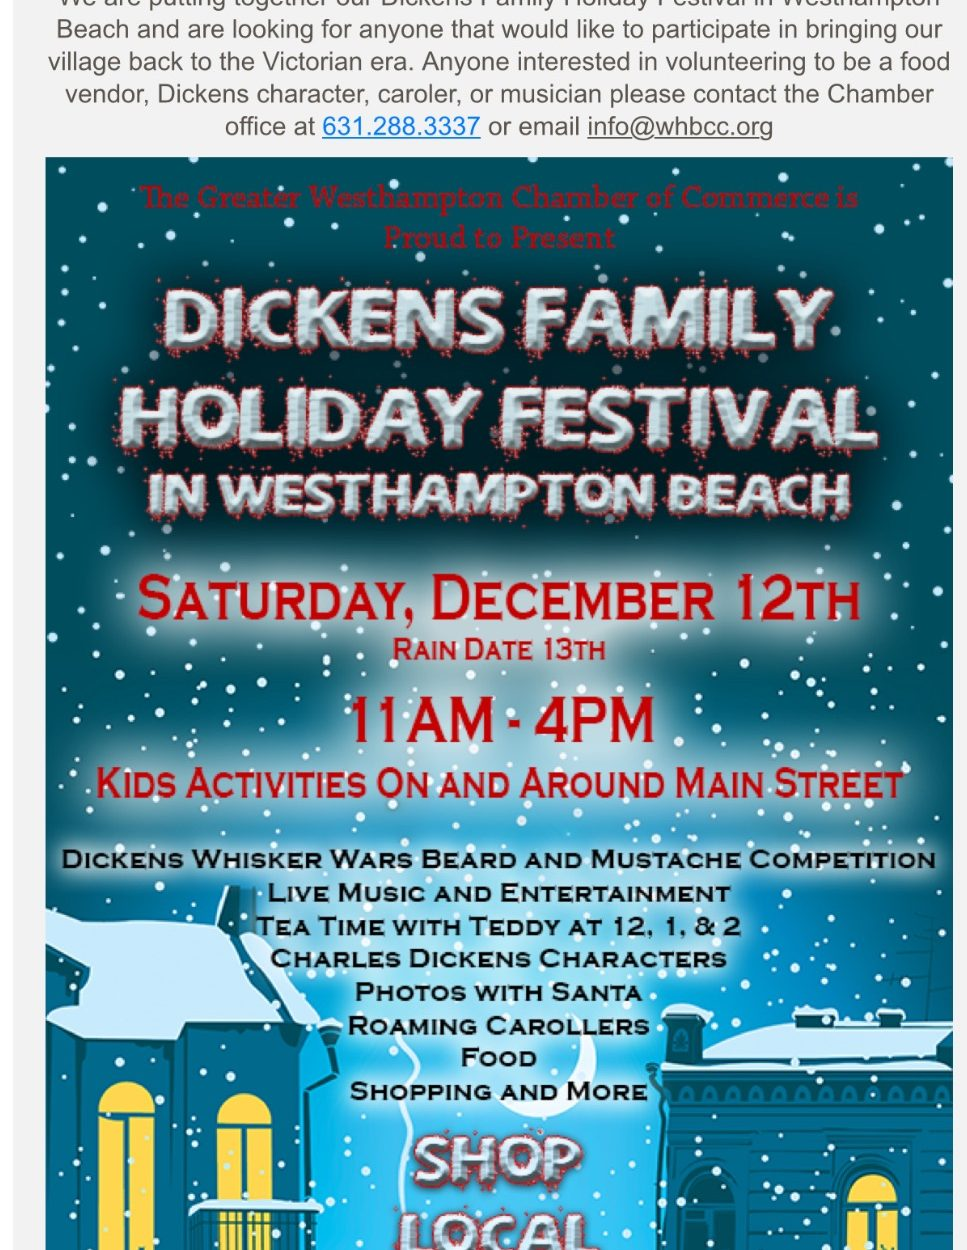 Join MBP at the Dickens Family Holiday Festival